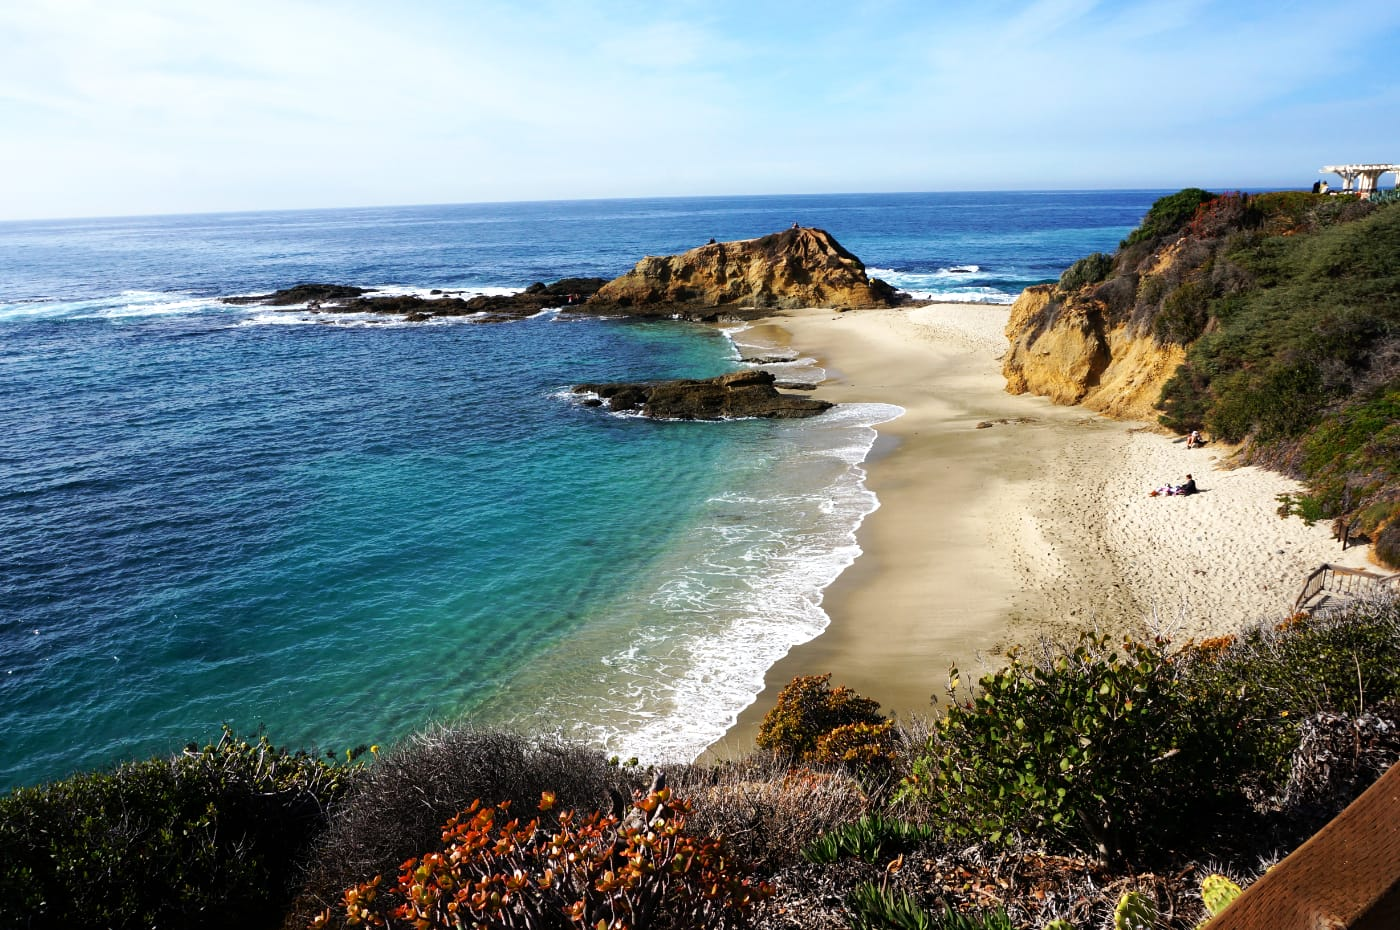 Plan A Road Trip >> Tips For Planning A Road Trip On California's Pacific Coast Highway